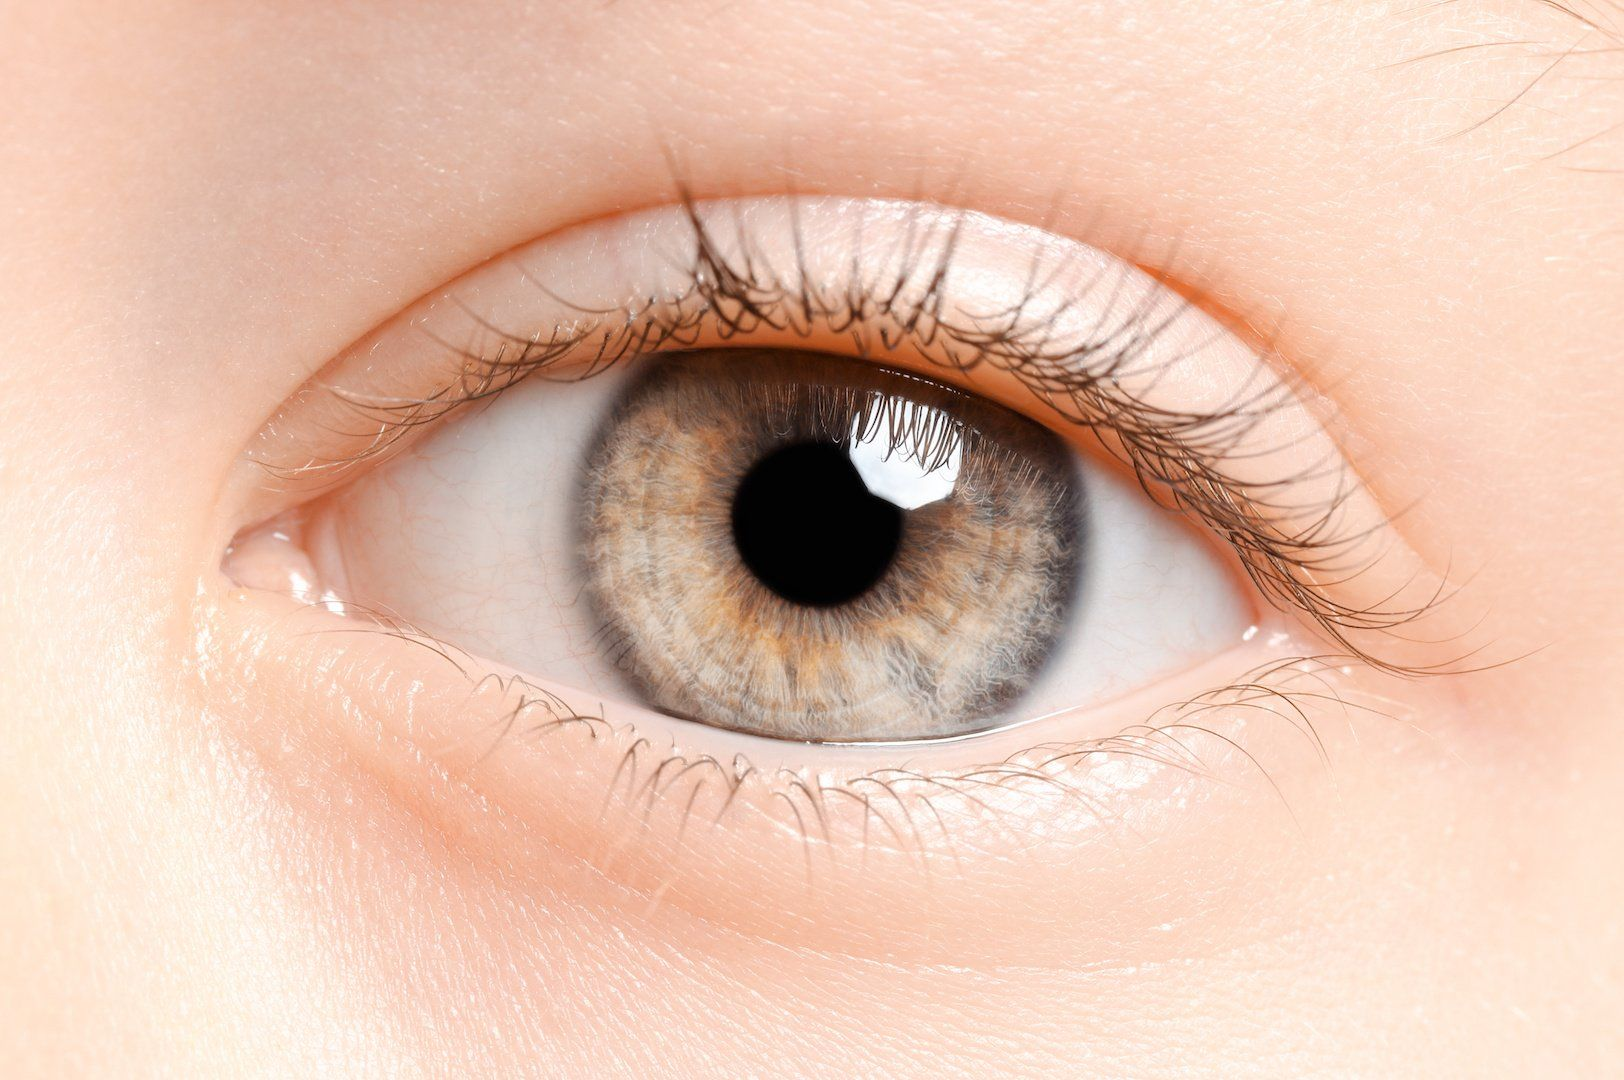 Ocular emergencies: What pediatricians and frontline physicians need to know